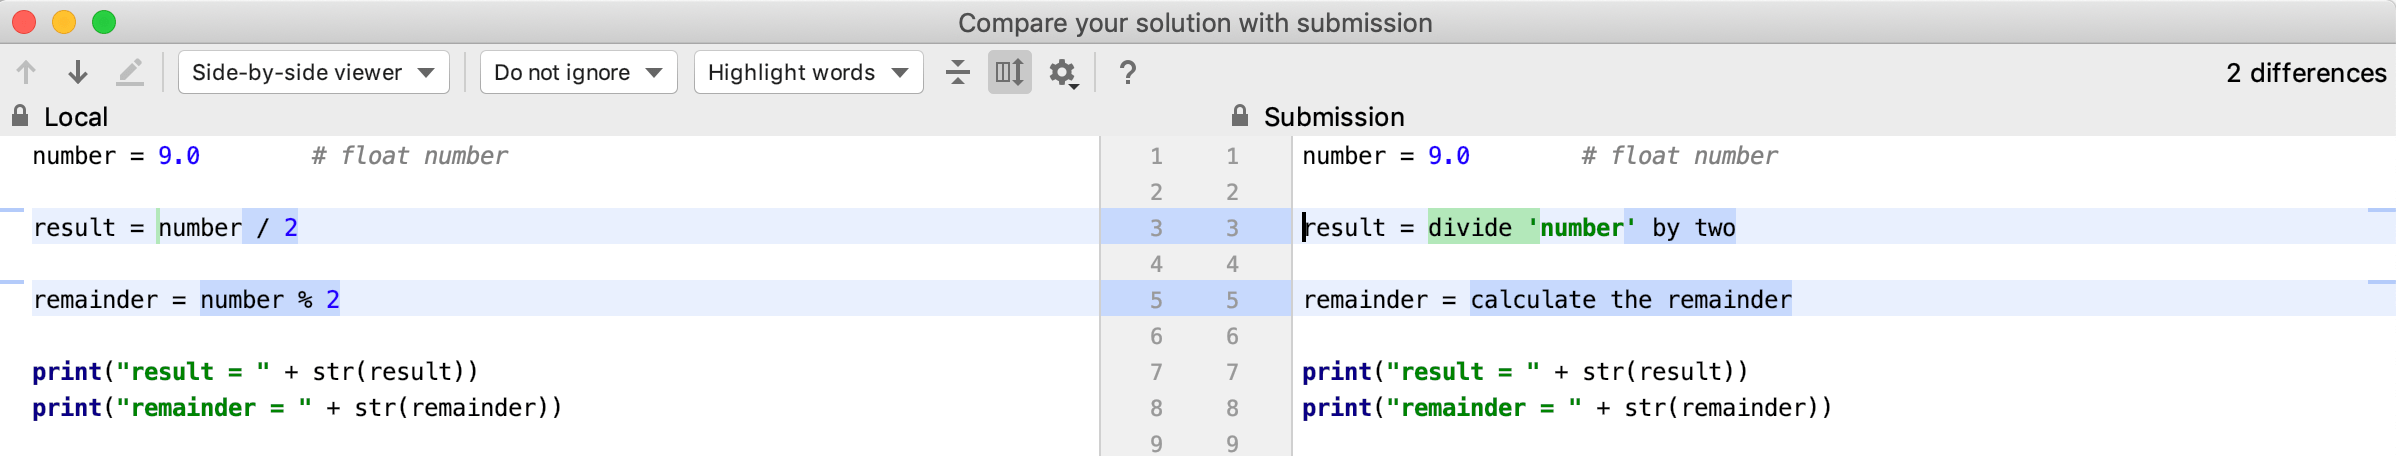 edu submissions diff python intro png